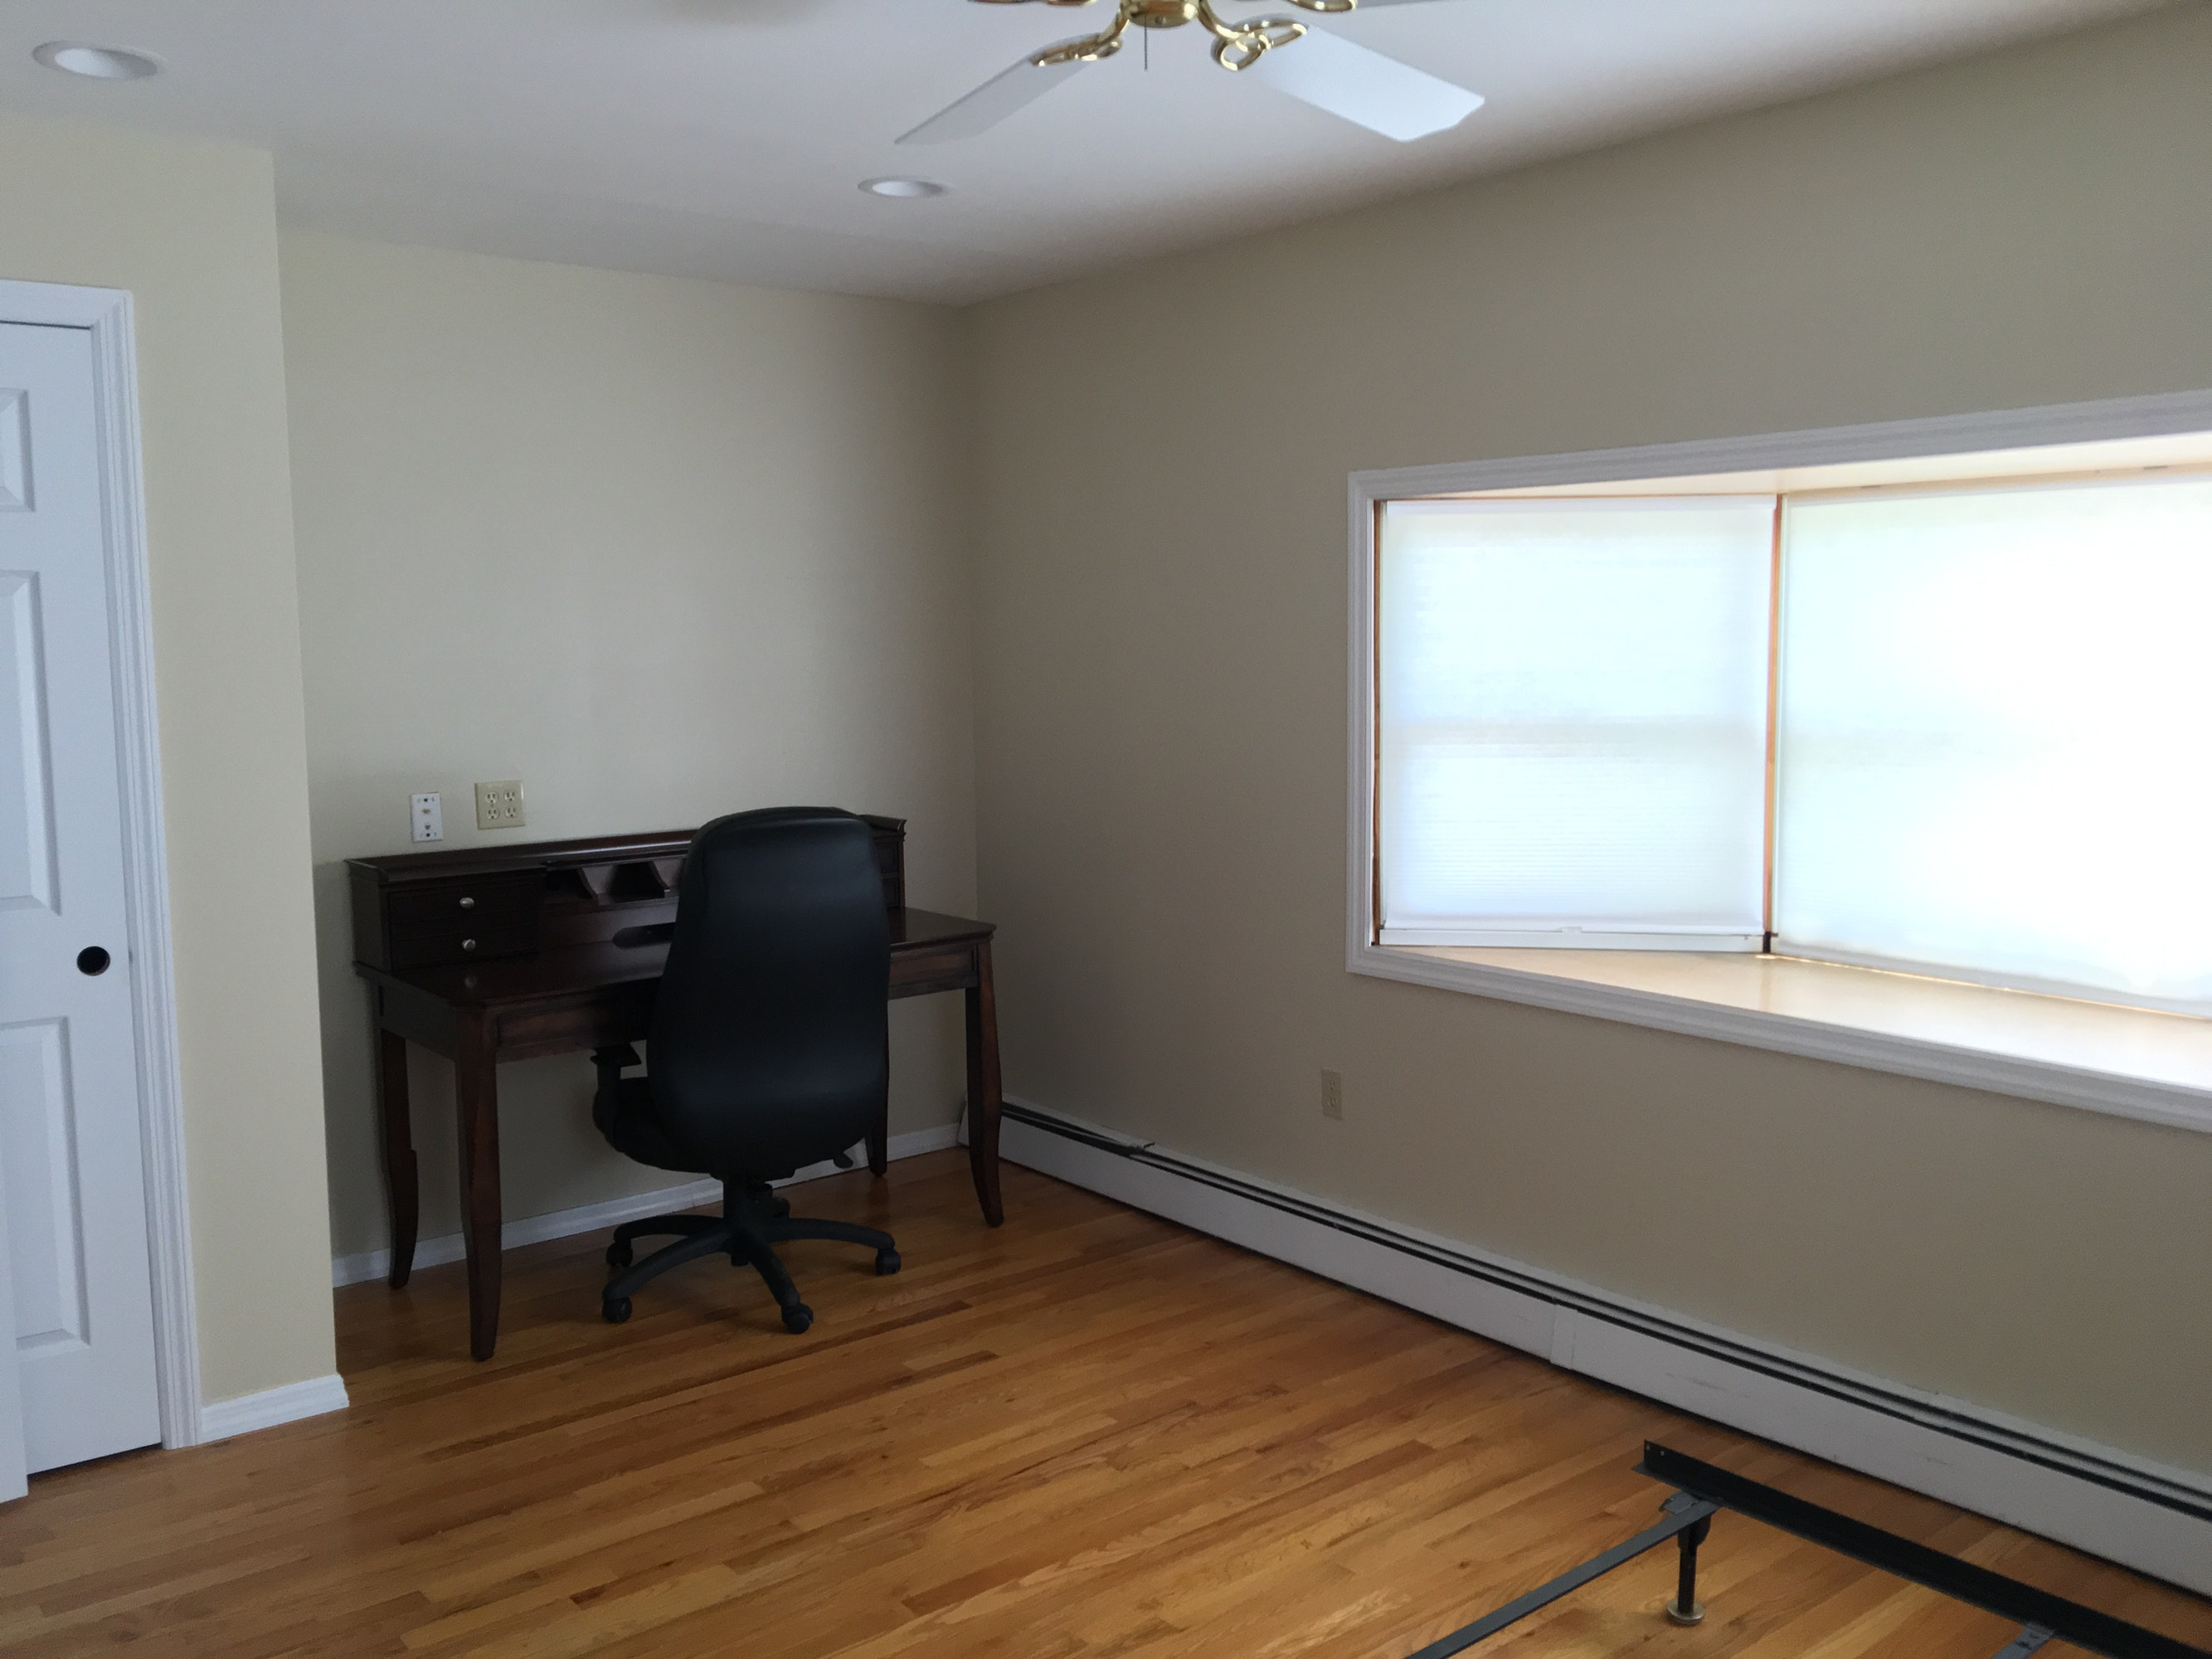 5 rooms for rent furnished and unfurnished apply cozy - Small space to rent photos ...